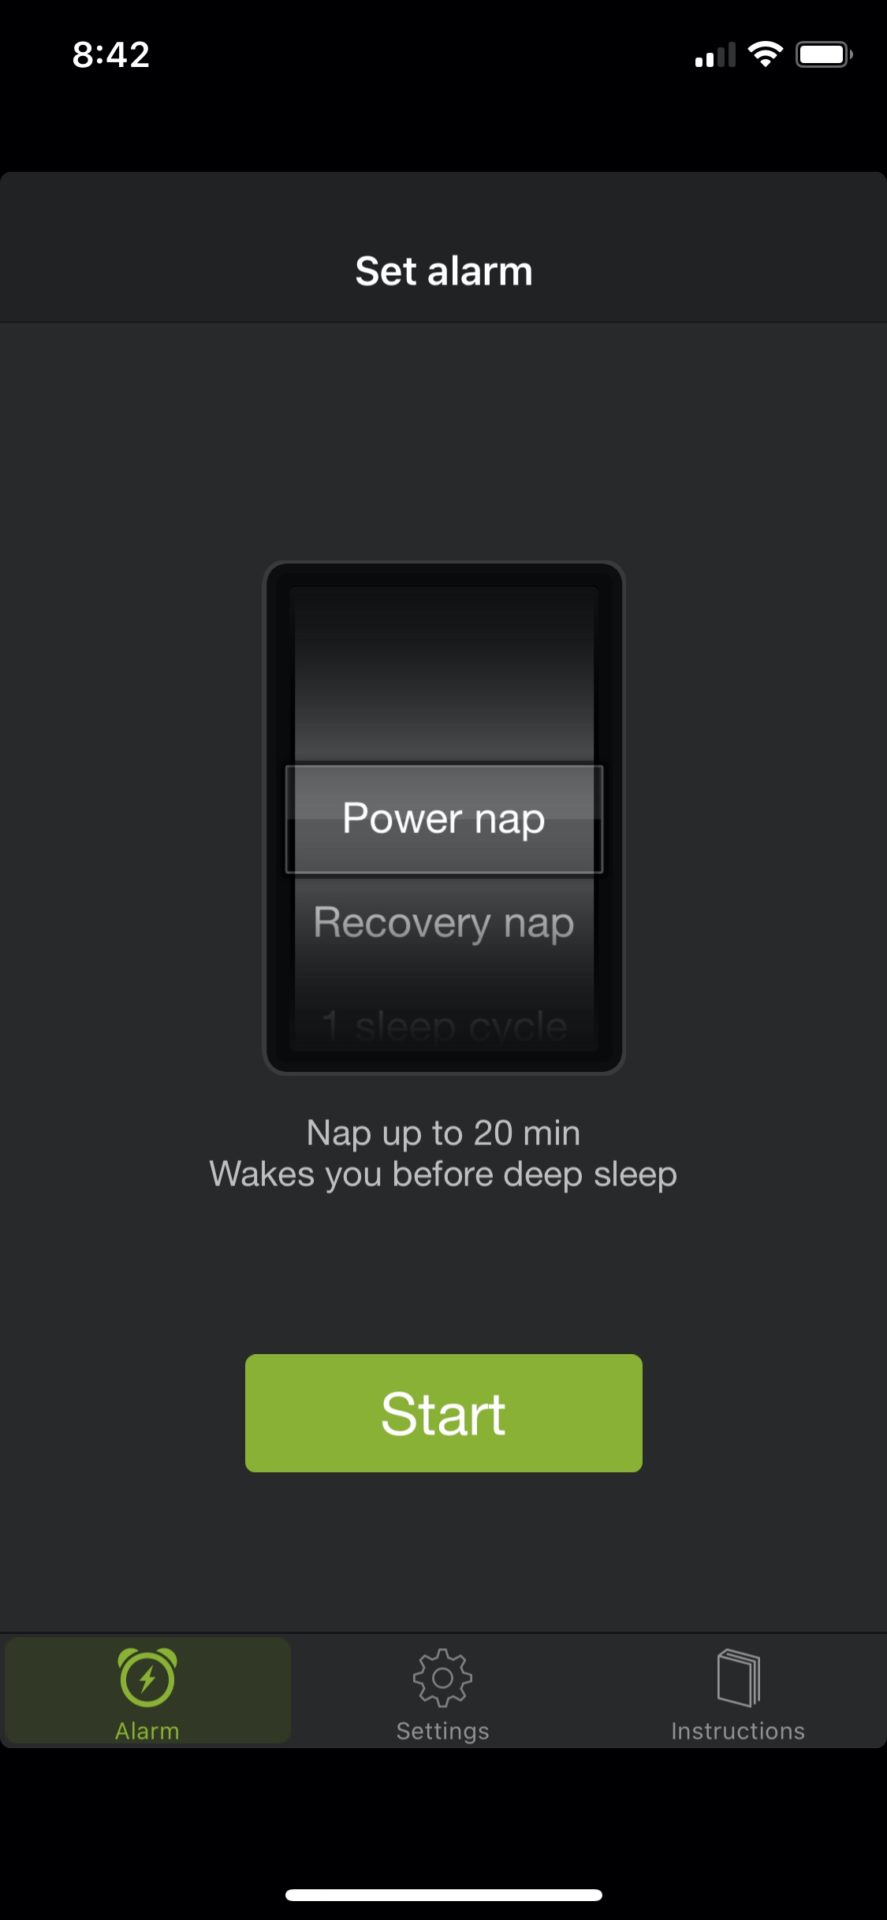 Power nap will keep you from feeling drowsy!